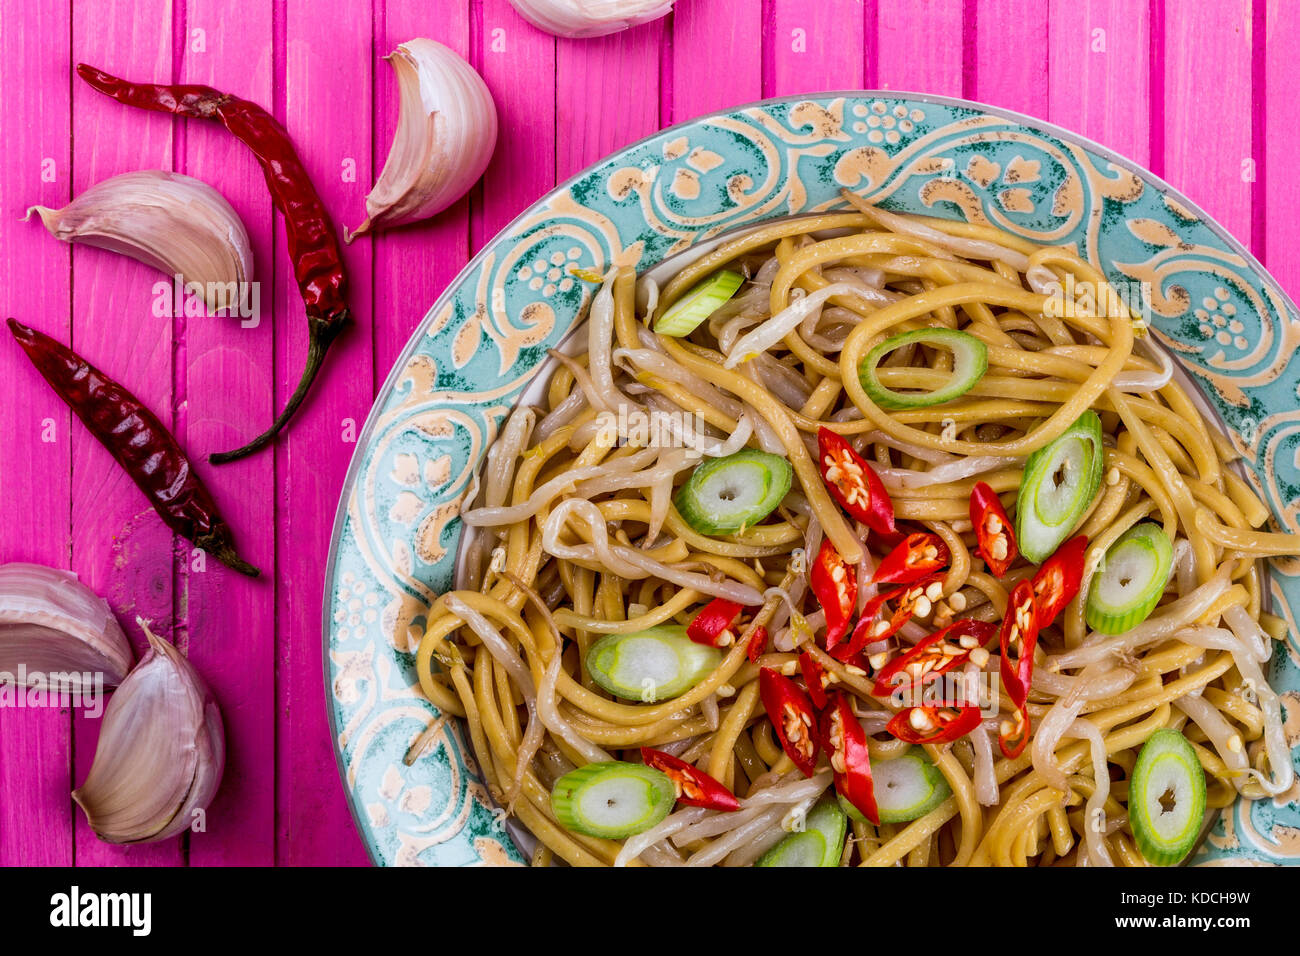 Chinese Style Wok Stir Fried Egg Noodles with Beansprouts and Red Chilli On A Pink Wooden Background - Stock Image